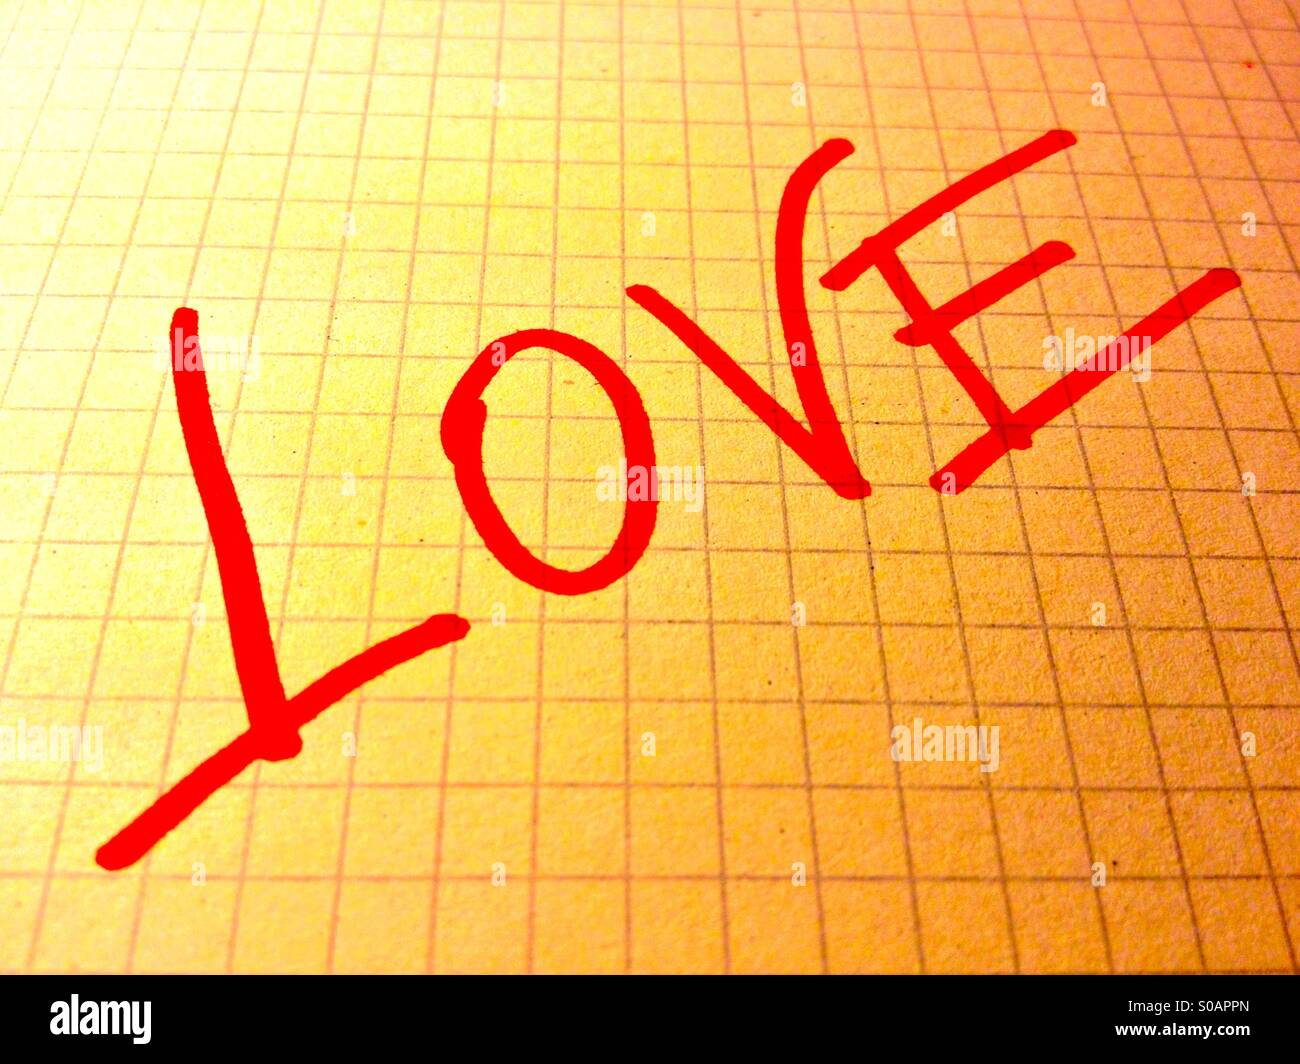 L'amour sur papier Photo Stock